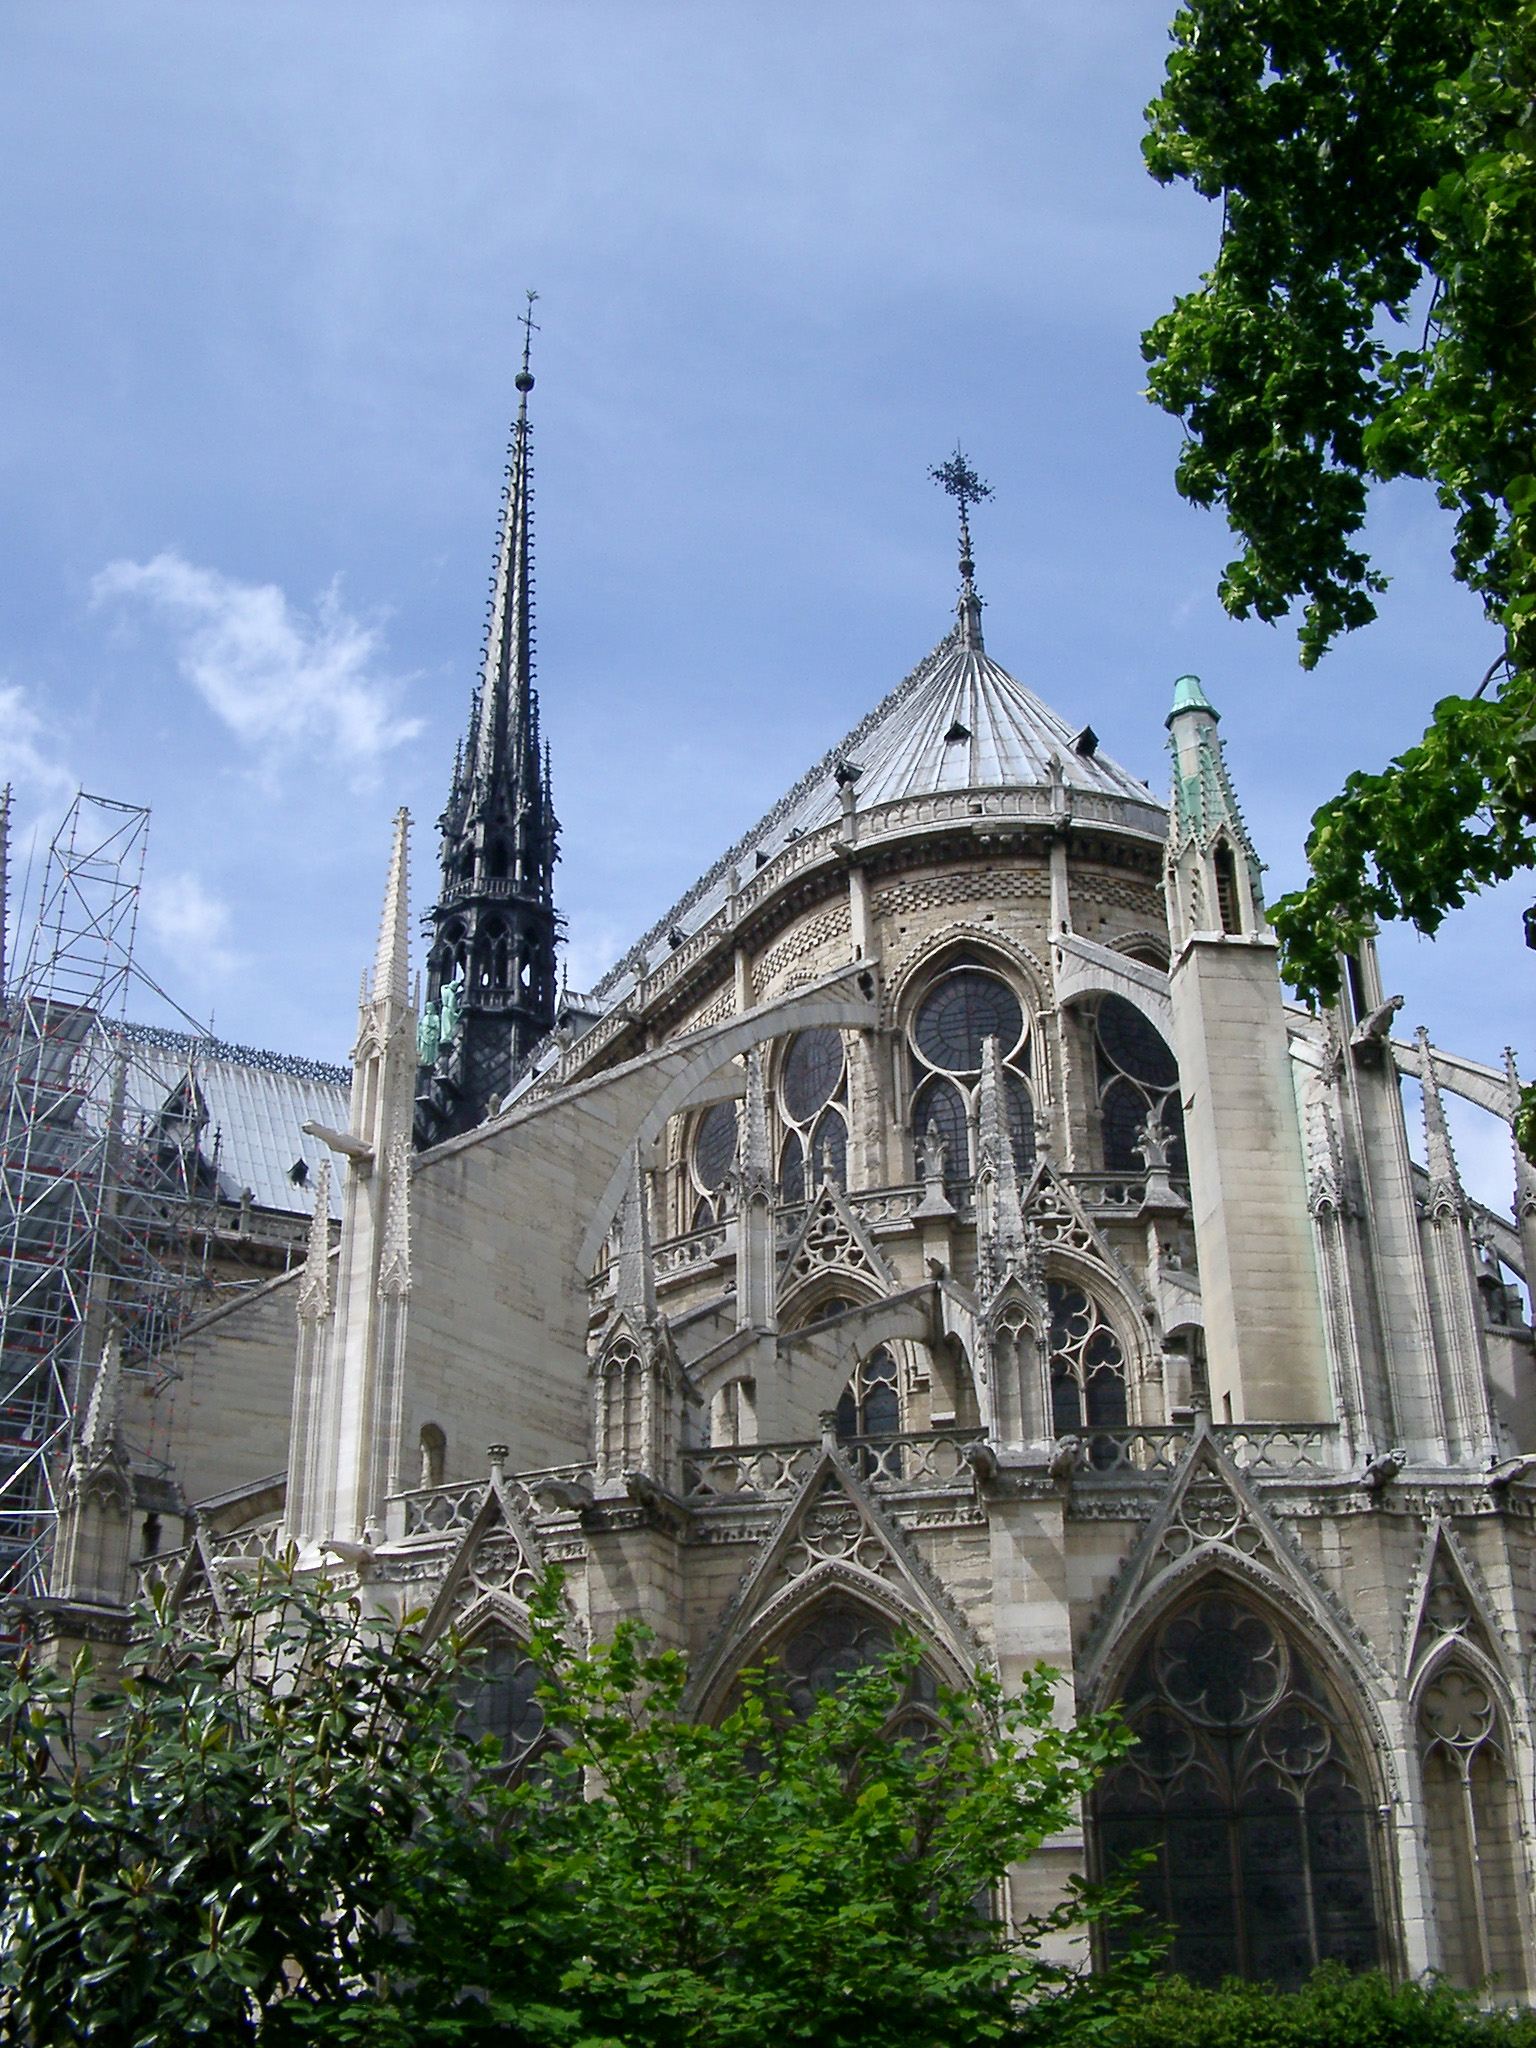 free stock photo of exterior of notre dame cathedral in